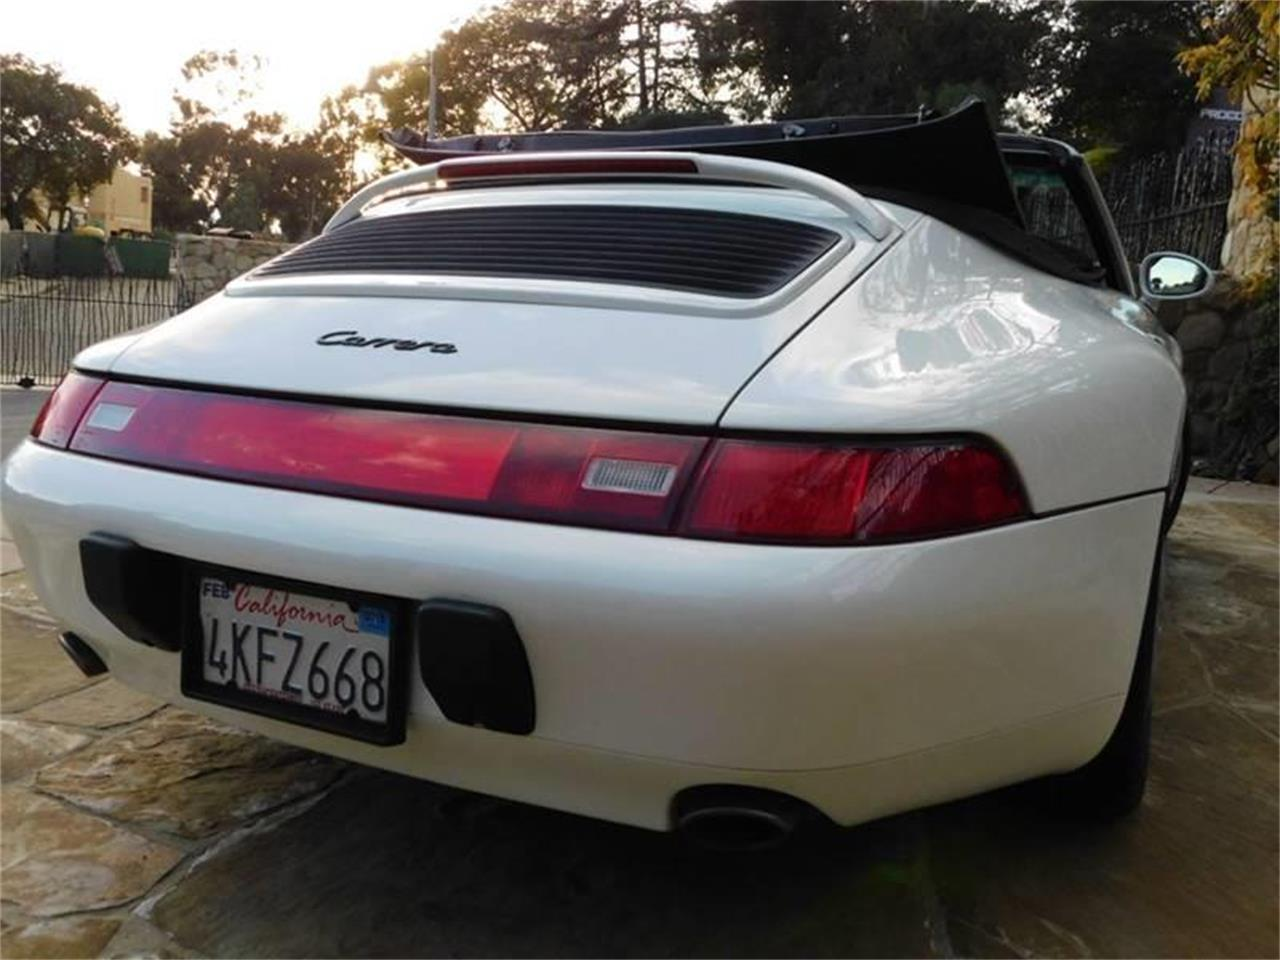 1995 Porsche 911 for sale in Santa Barbara, CA – photo 8